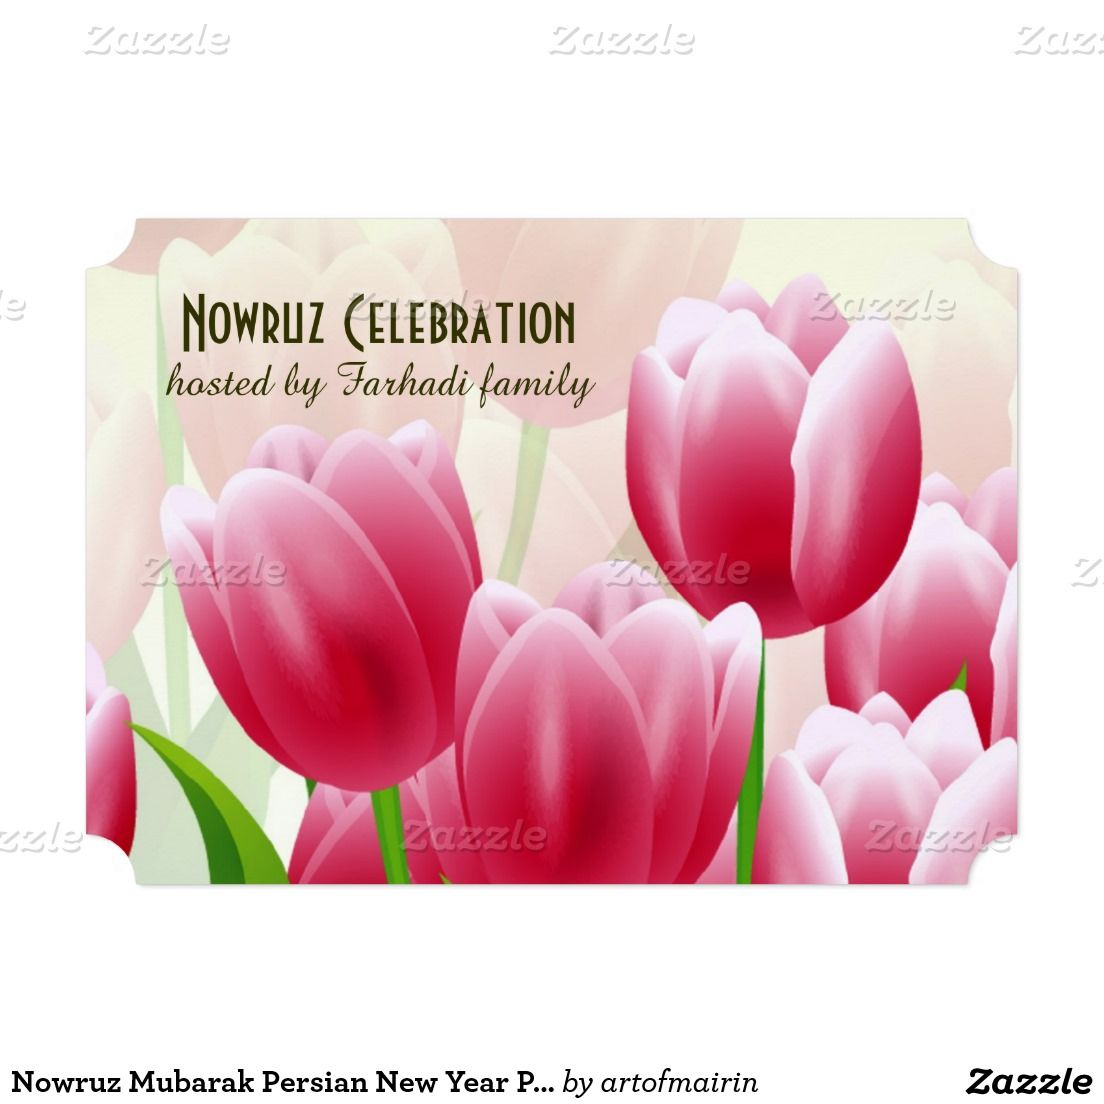 Nowruz mubarak persian new year party invitations persian and nowruz mubarak muslim spring festival norooz persian new year customizable greeting cards matching cards postage stamps and other products available kristyandbryce Gallery